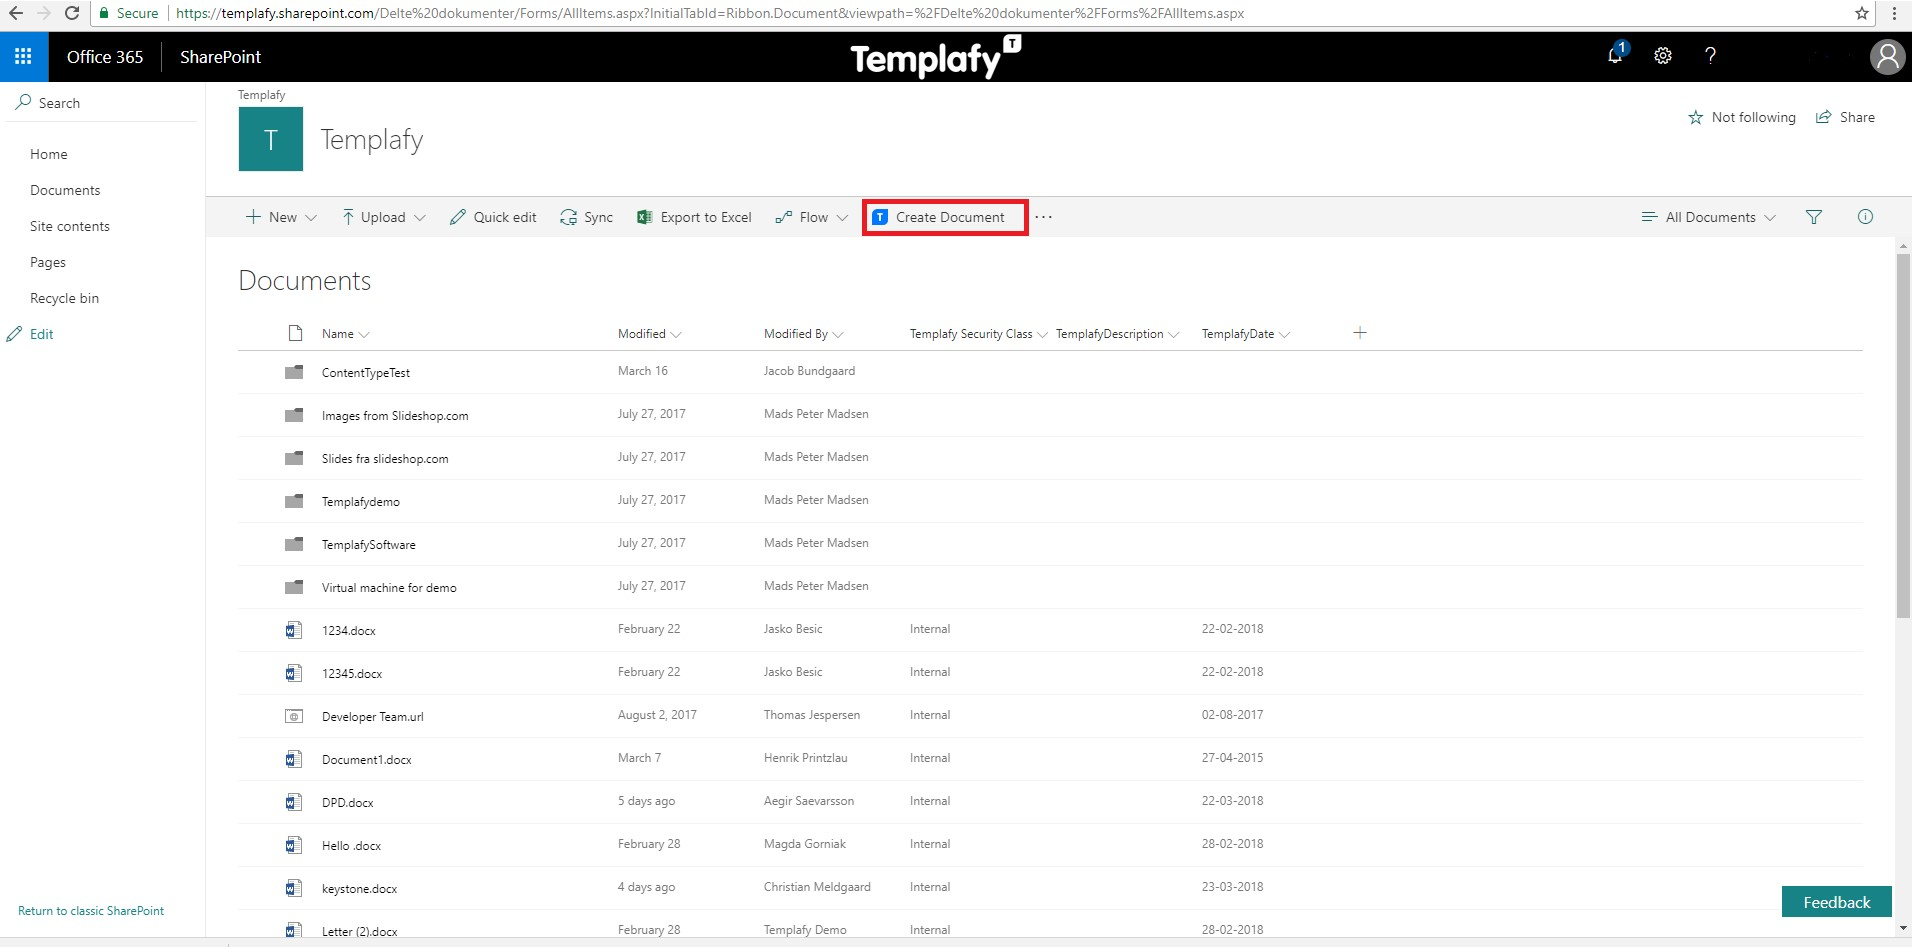 How To Create A Document With Templafy From Office 365 Online Help